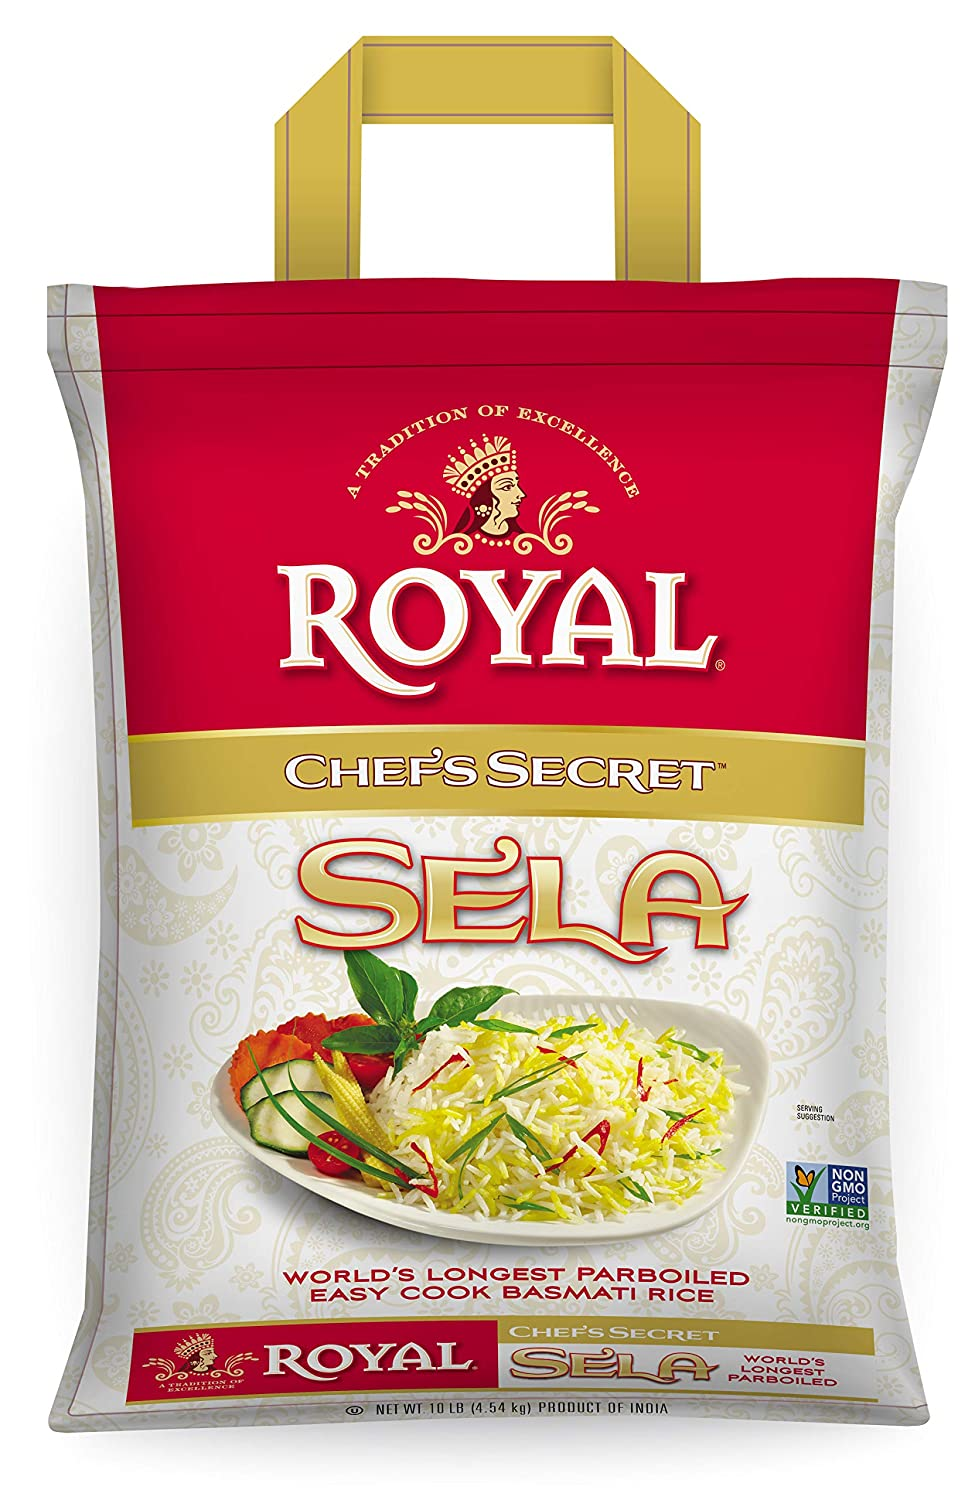 Royal Chef's Secret Parboiled Sella Extra Long Basmati Rice, 10 Pound